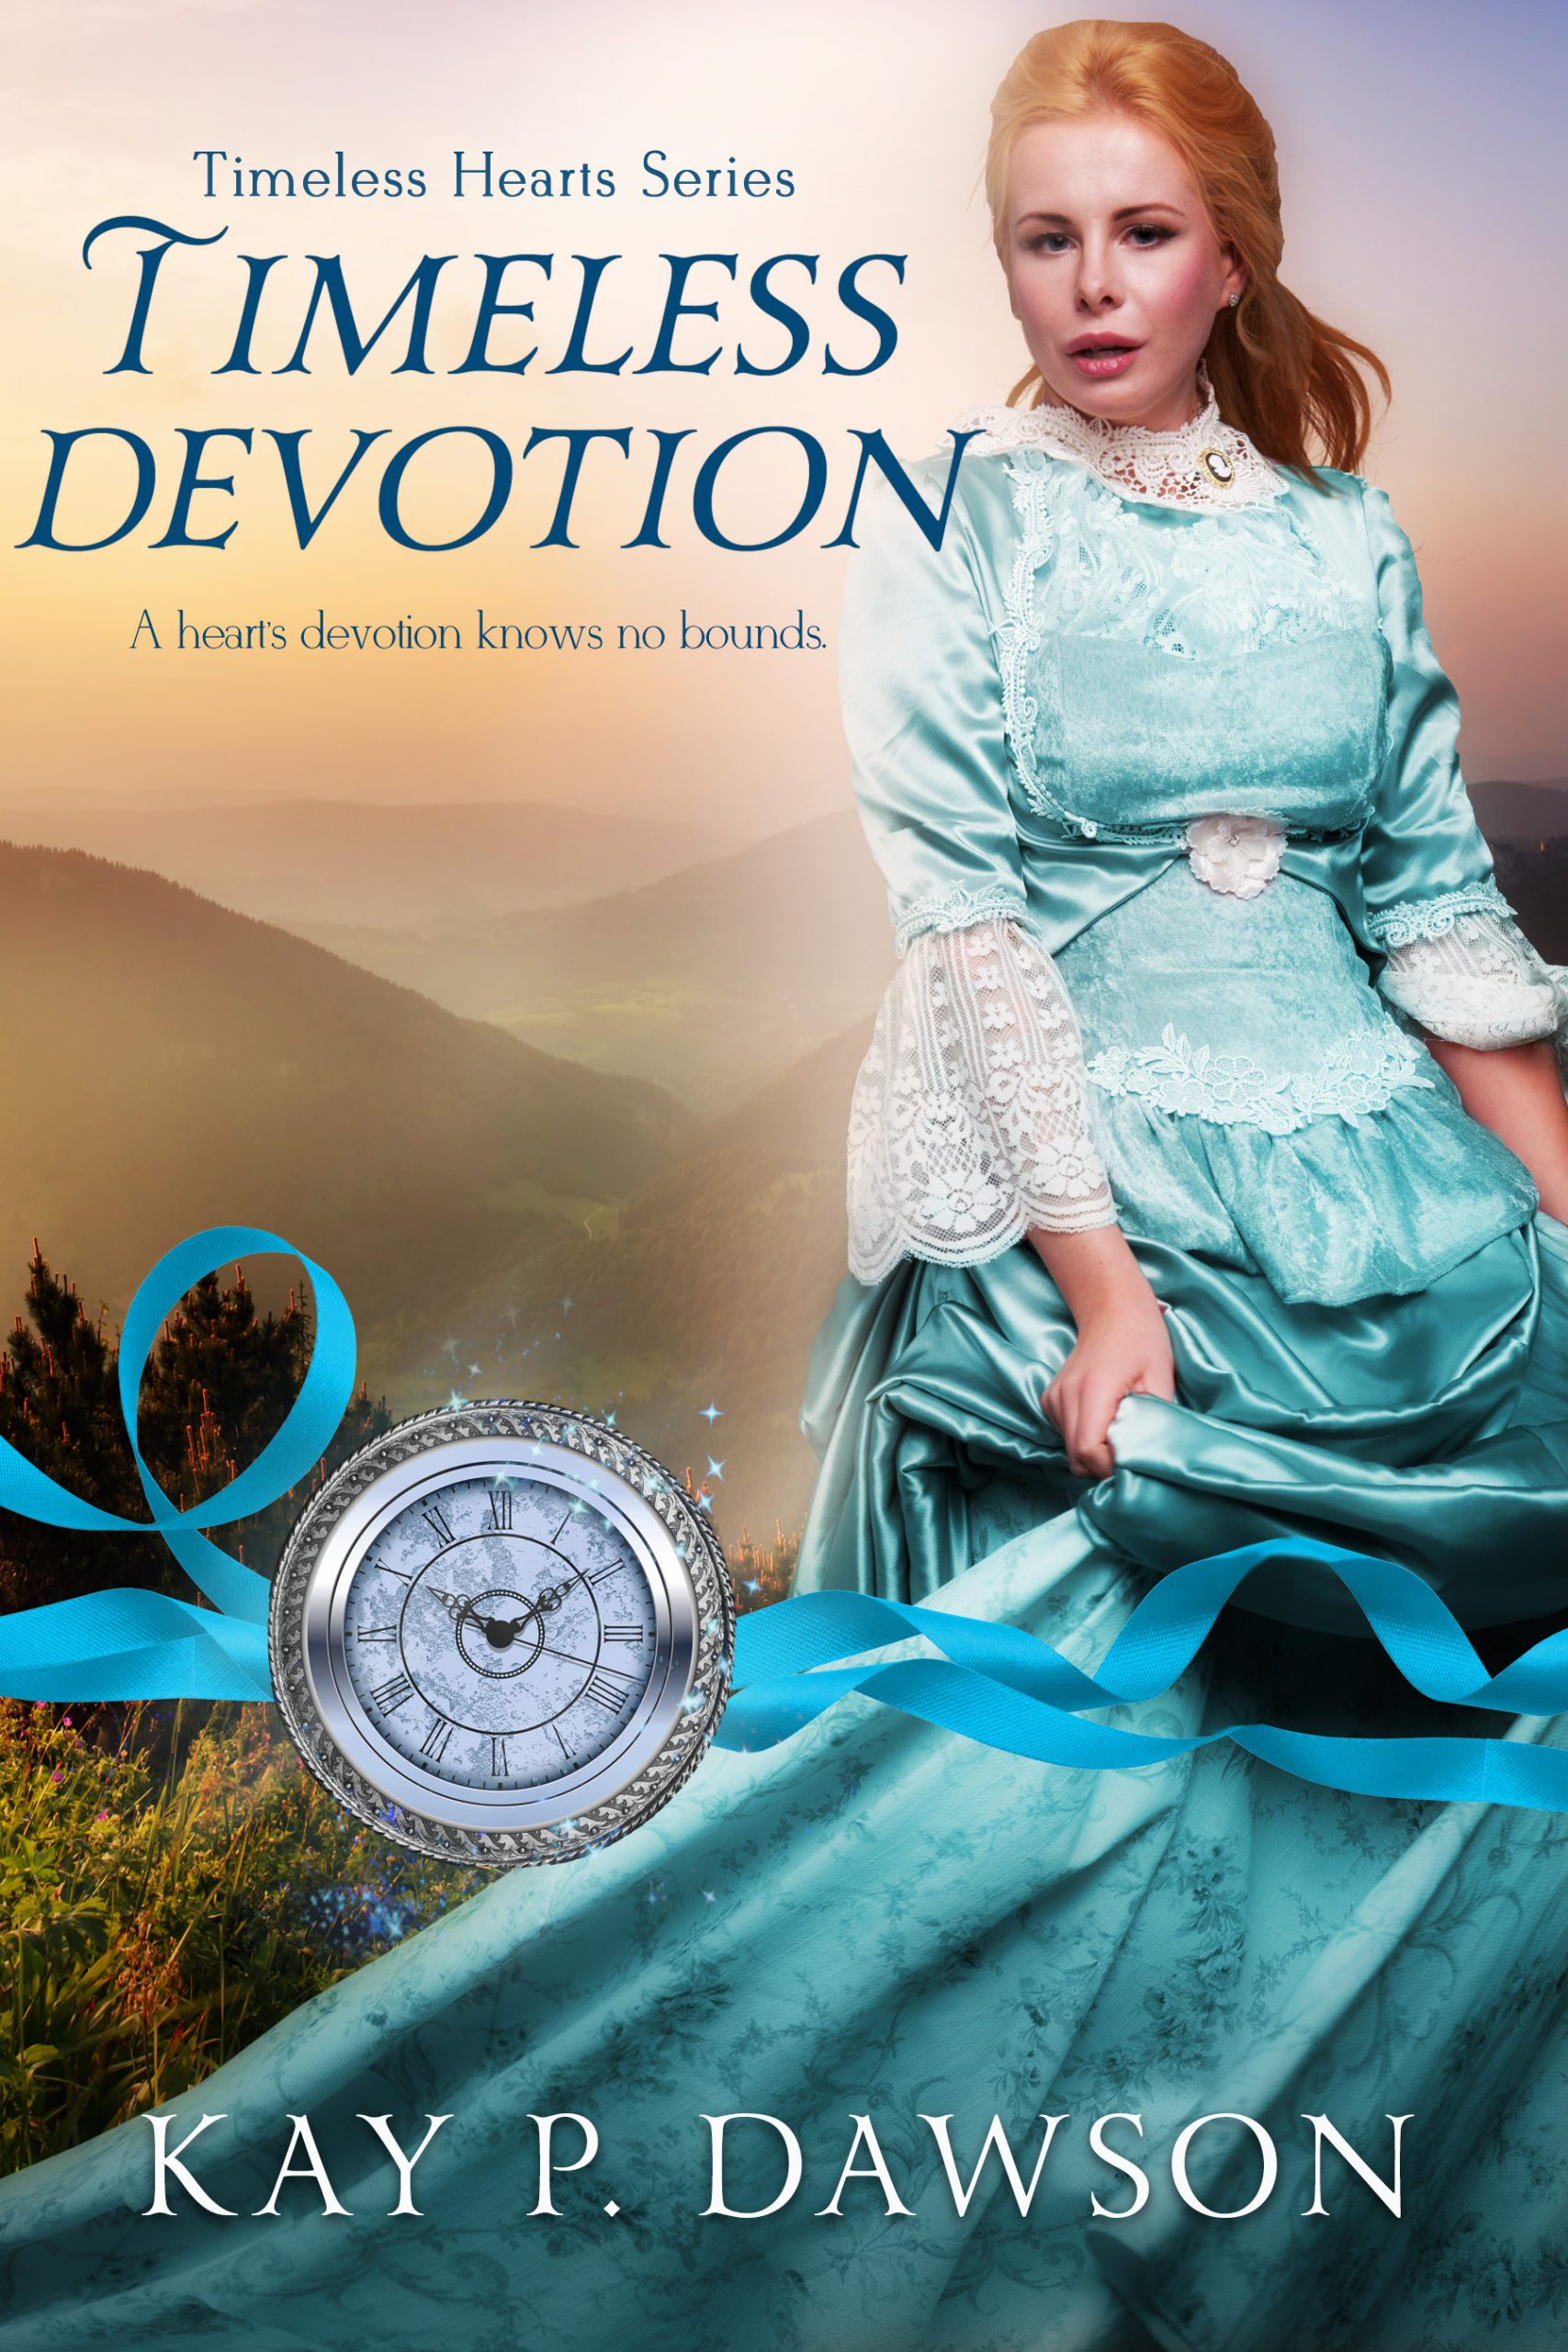 Timeless Devotion - Timeless Hearts Series